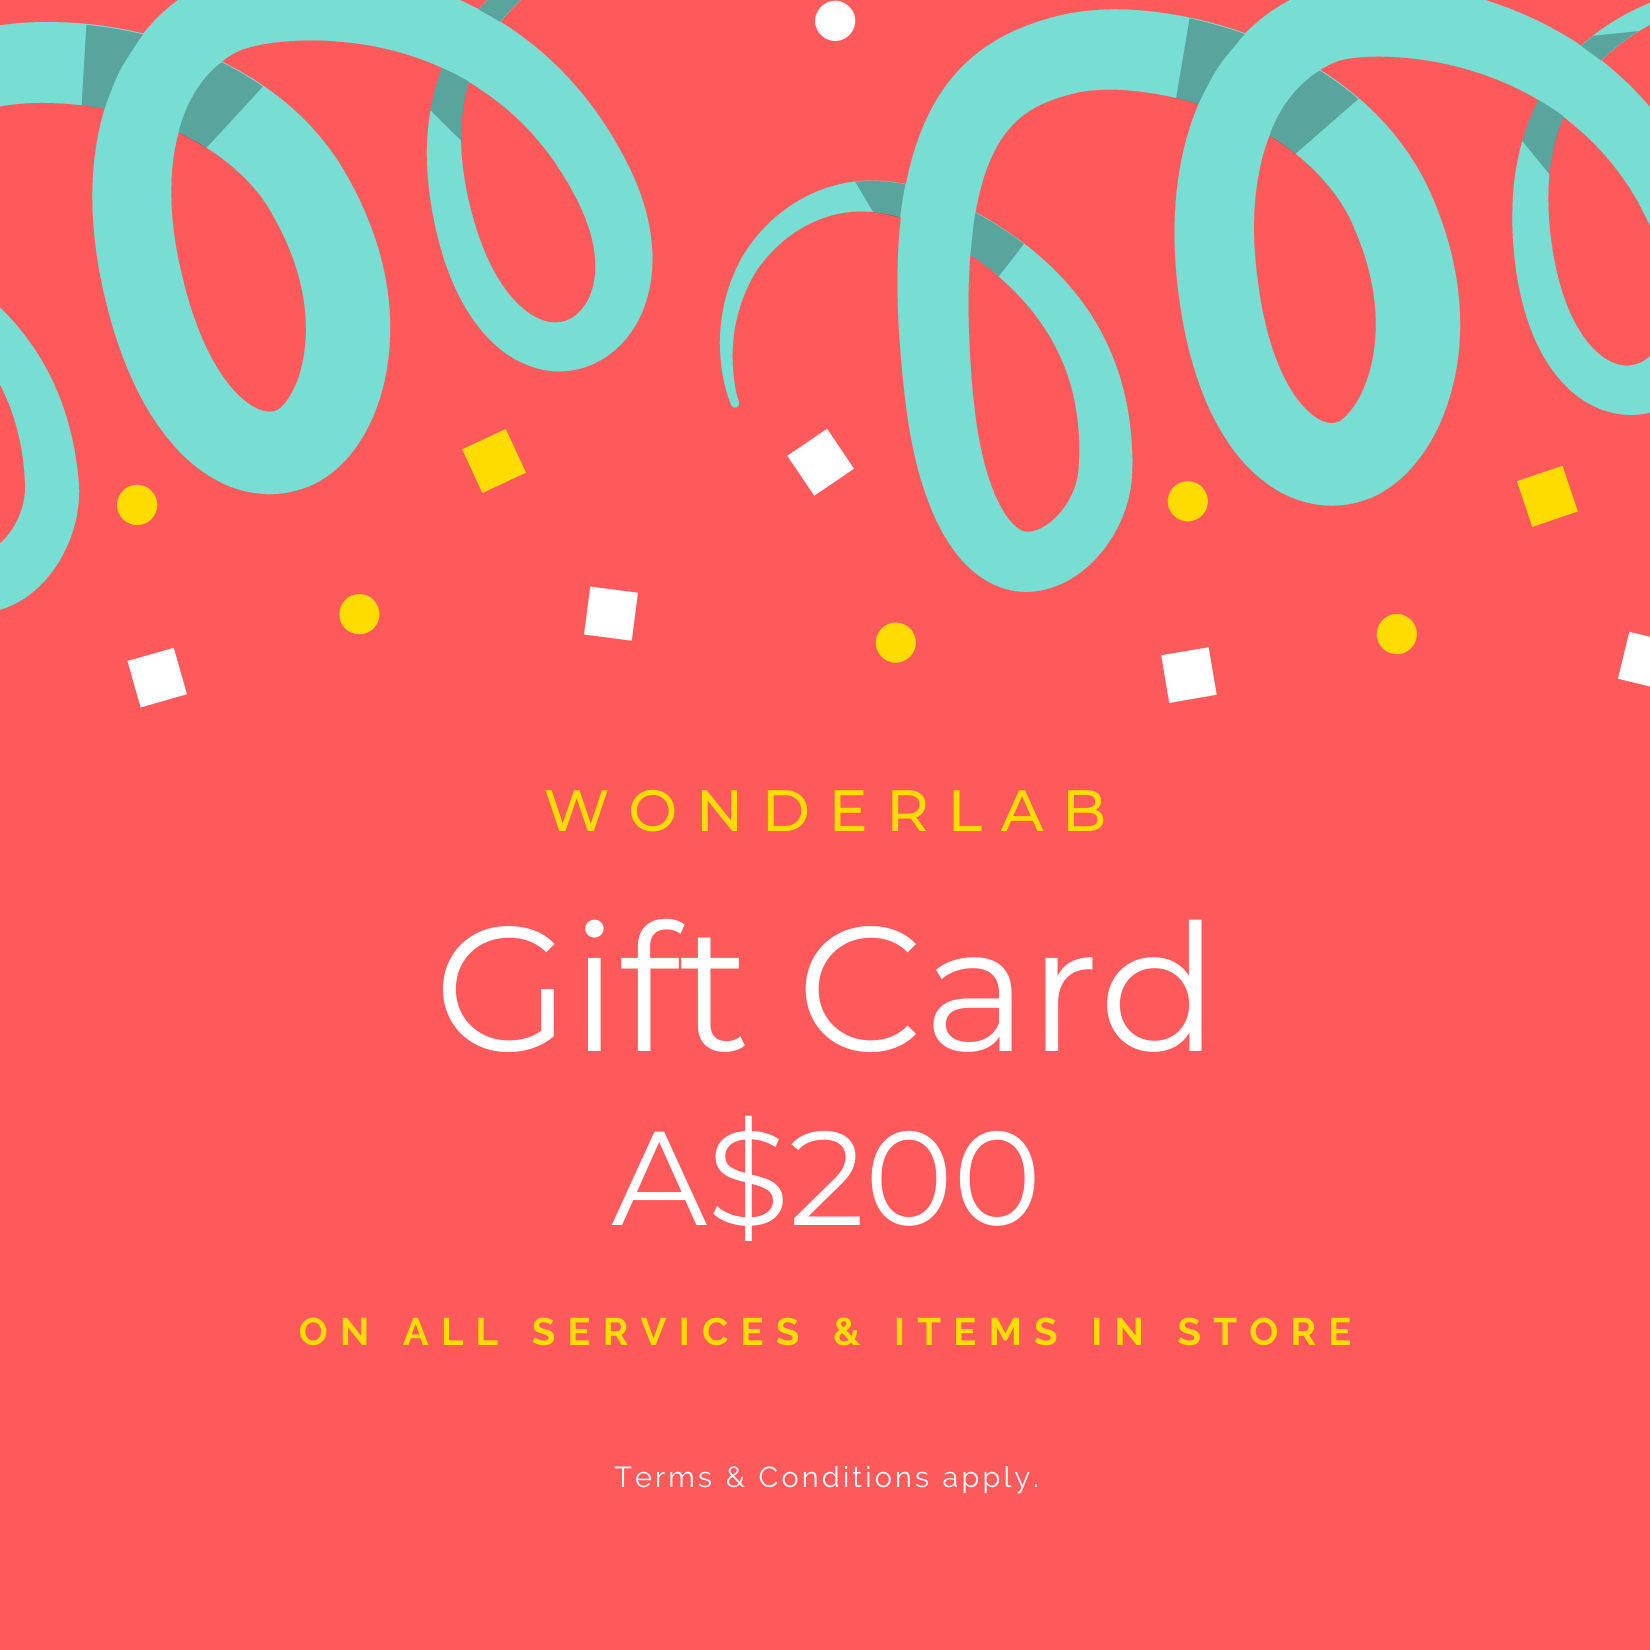 Wonderlab Gift Card